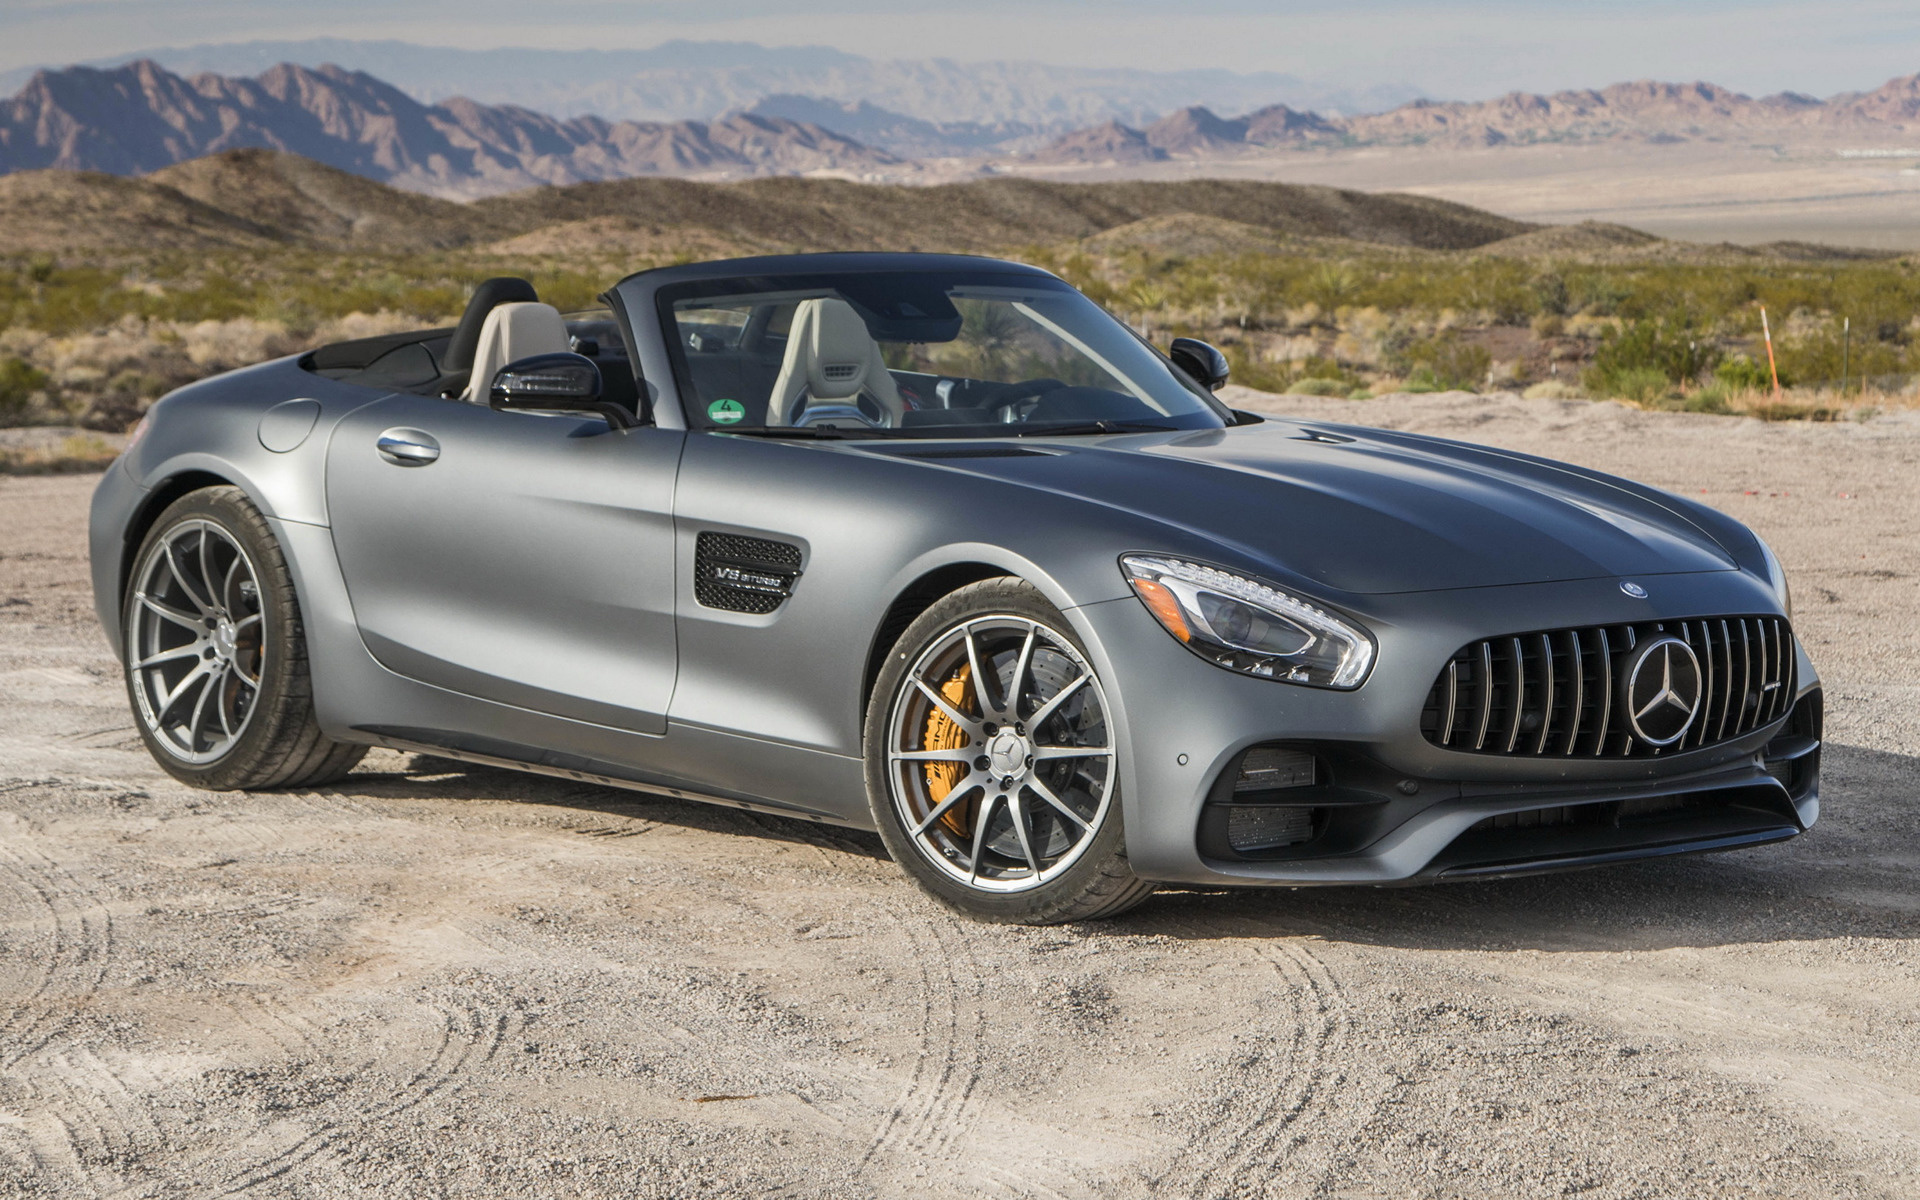 https://www.carpixel.net/w/78d24e1f7197c4015ac8c85cdb6541d3/mercedes-amg-gt-c-roadster-car-wallpaper-59122.jpg